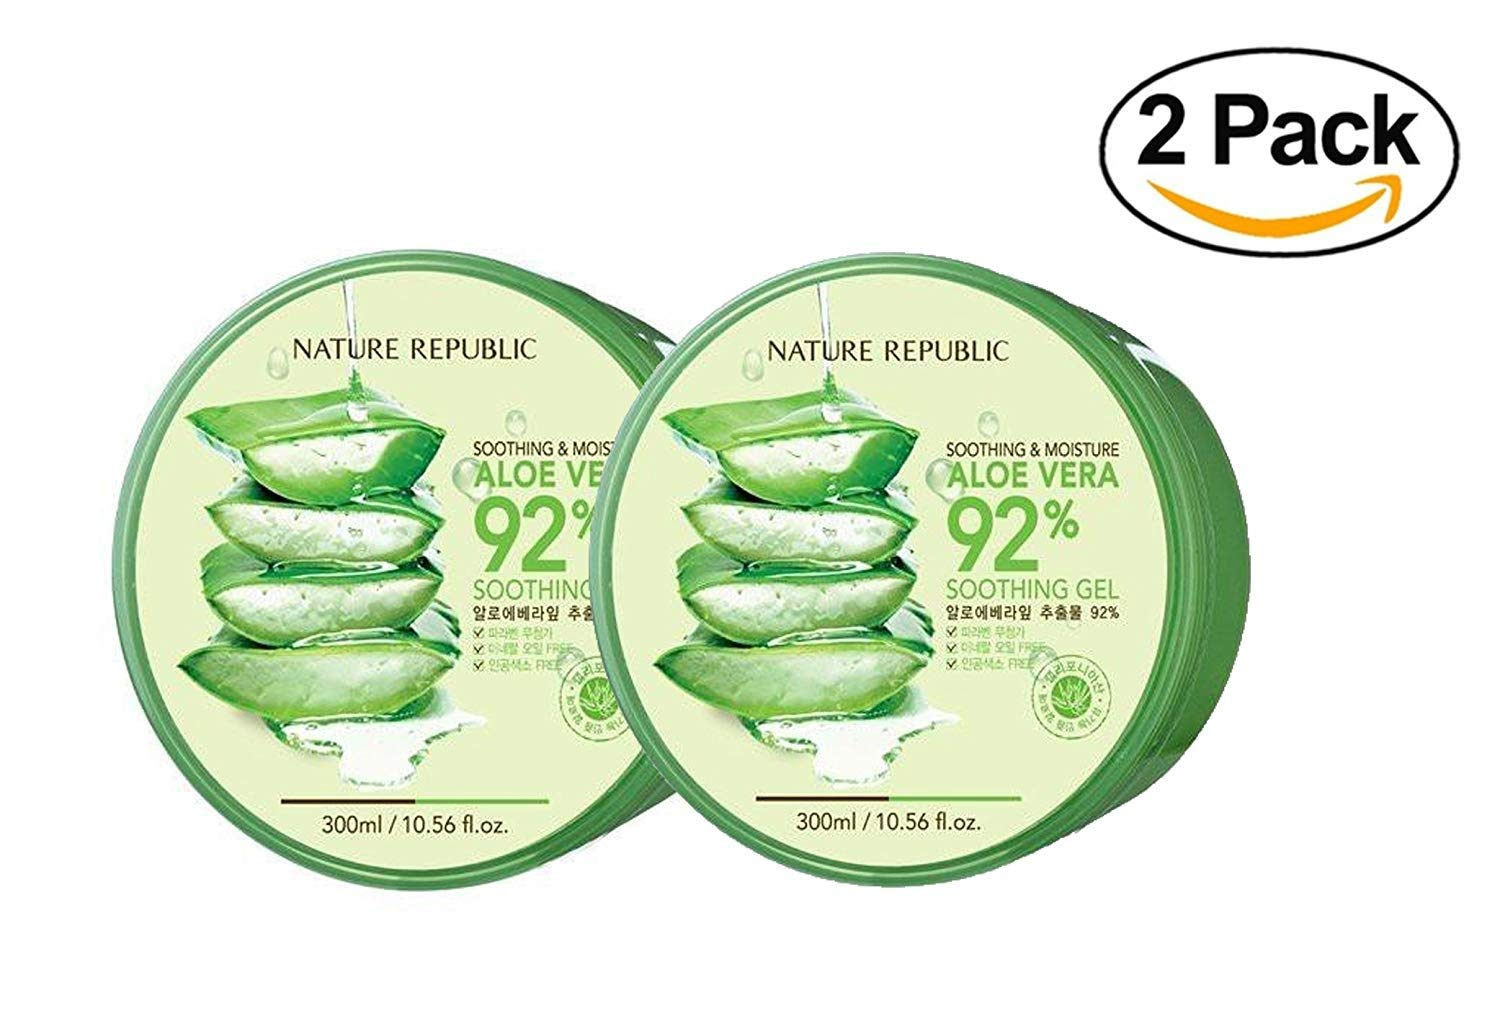 Nature Republic New Soothing Moisture Aloe Vera 92 Jar Gel 300 Ml 1056 Fl Oz Health Personal Care